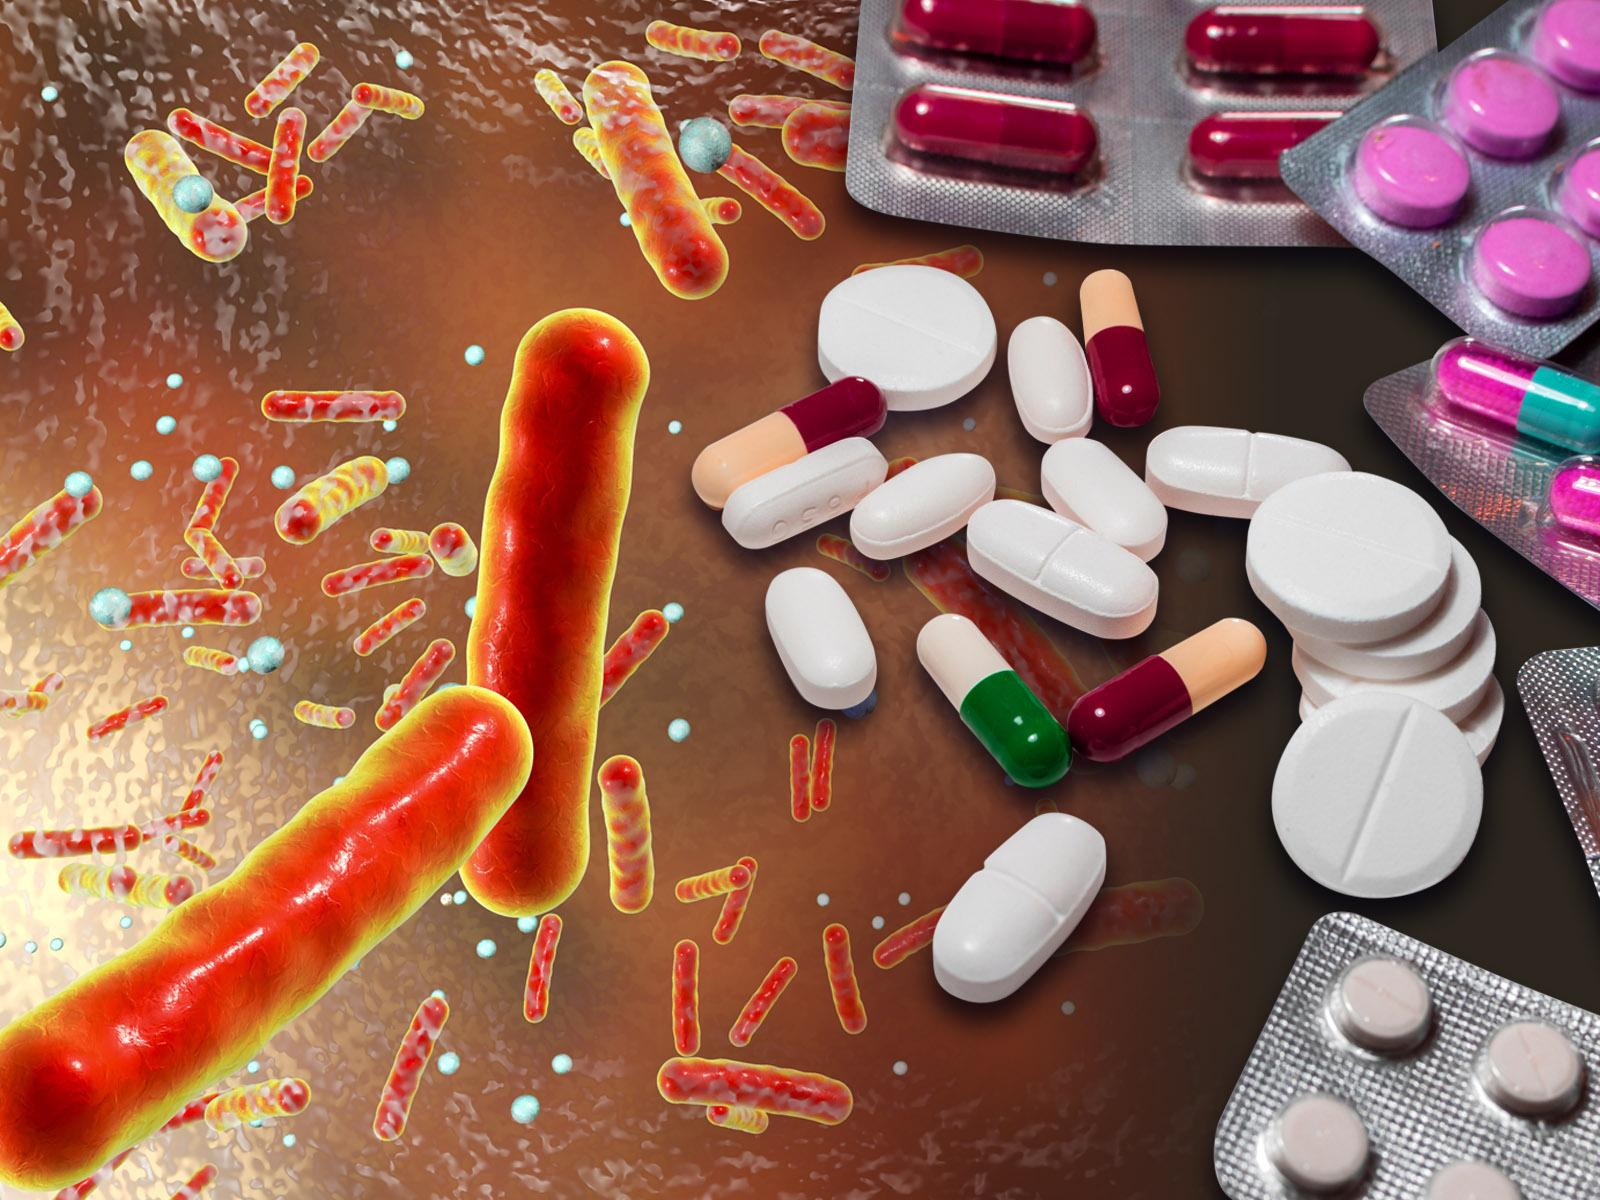 Illustration showing microbes and medicines